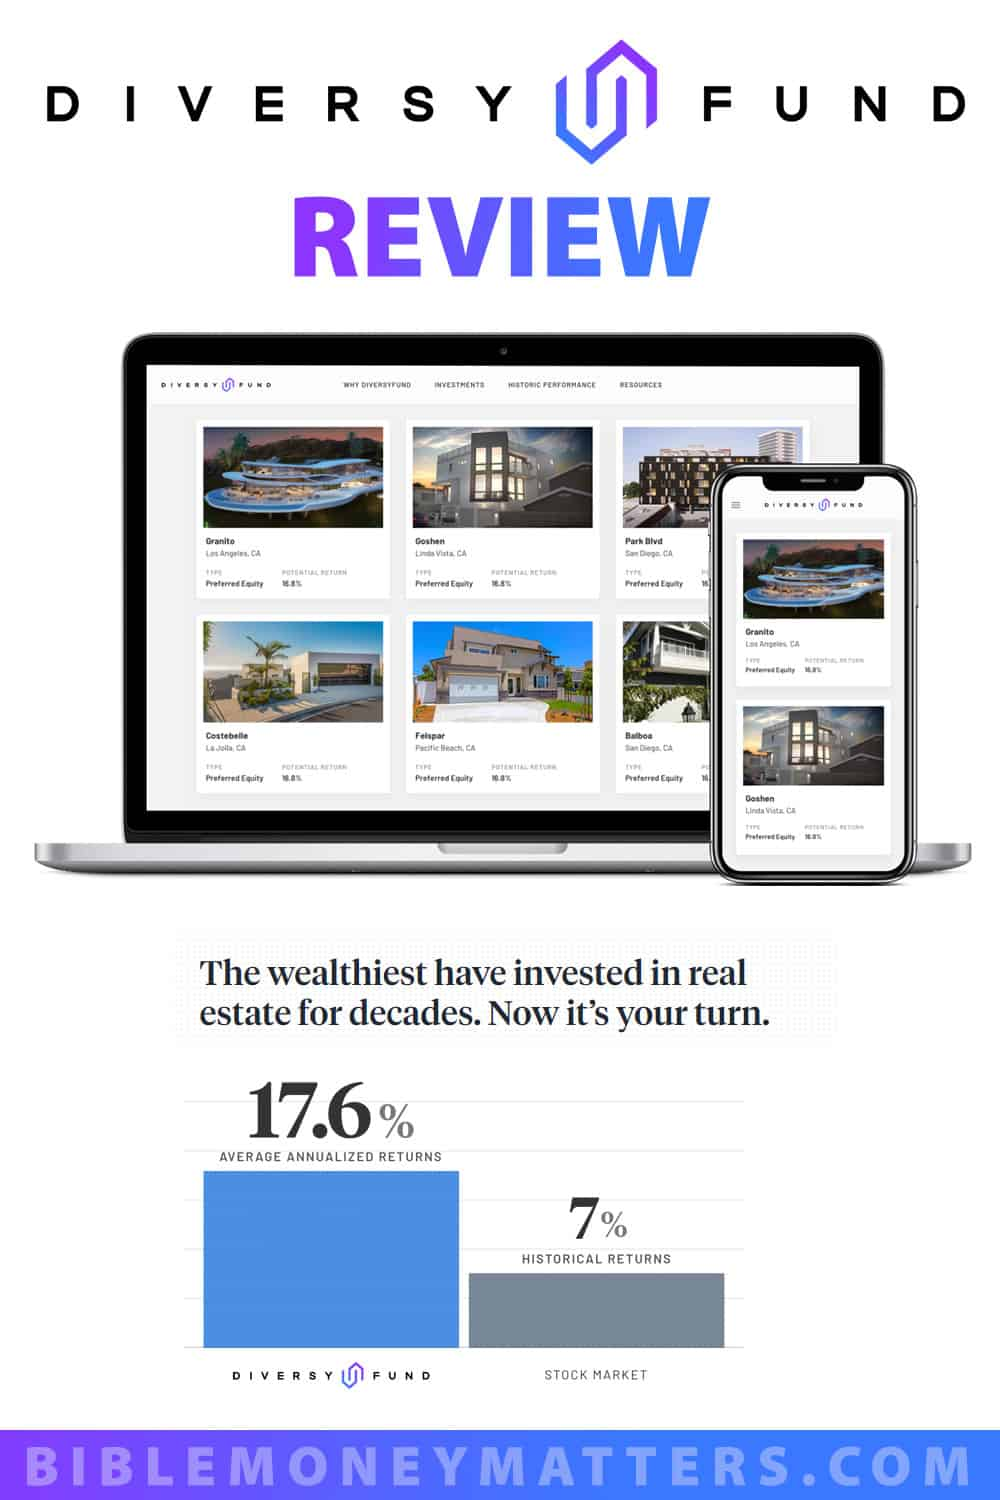 DiversyFund Review: Passive Income Through Real Estate Investing